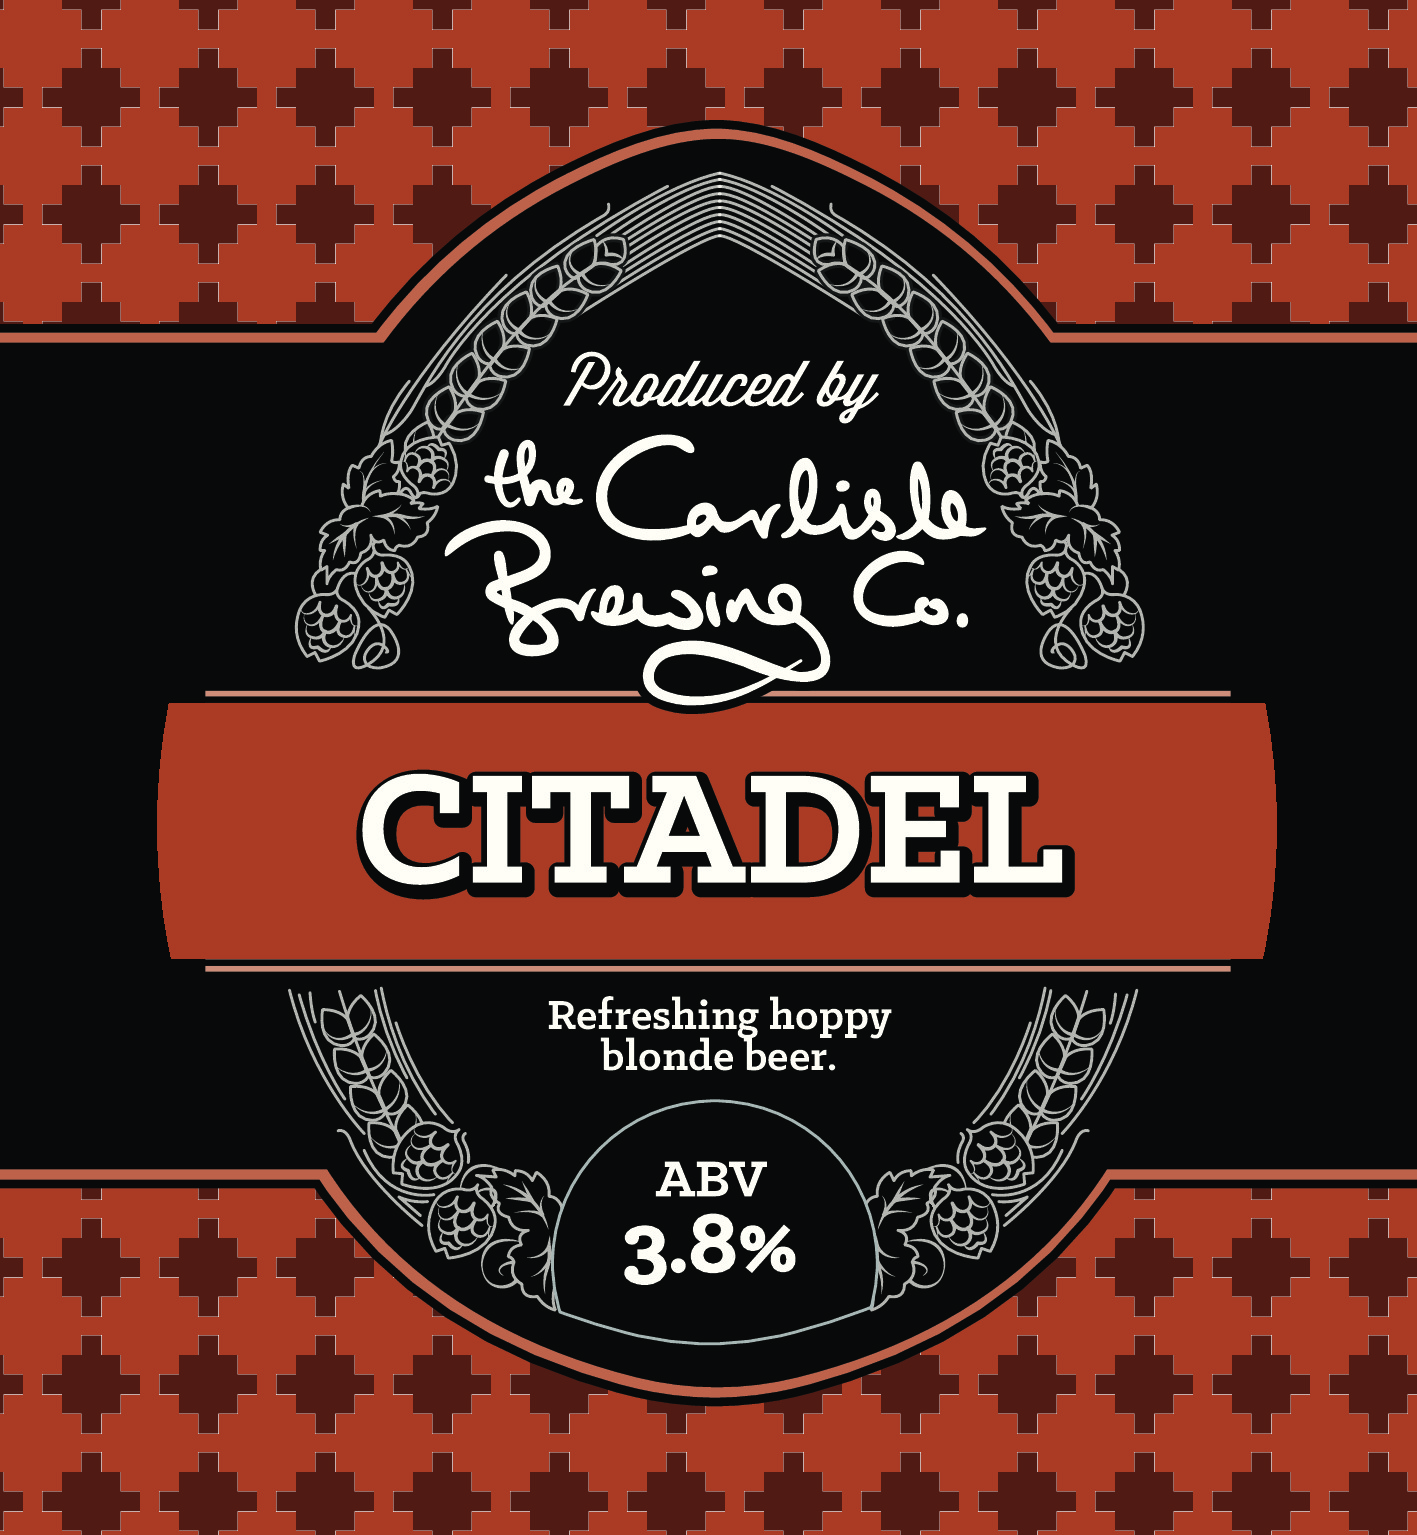 Light, crisp and very hoppy   Citadel is a fantastic, easy drinking hoppy beer. It's really refreshing and packed with flavour. At 3.8% it's an ideal session ale. We've used Styrian hops to provide a light aromatic bitterness with spicy and earthy notes. The Citadel in Carlisle and Carlisle Citadel Railway Station are highly impressive buildings in the centre of the city – we really hope you'll be impressed with our Citadel too!